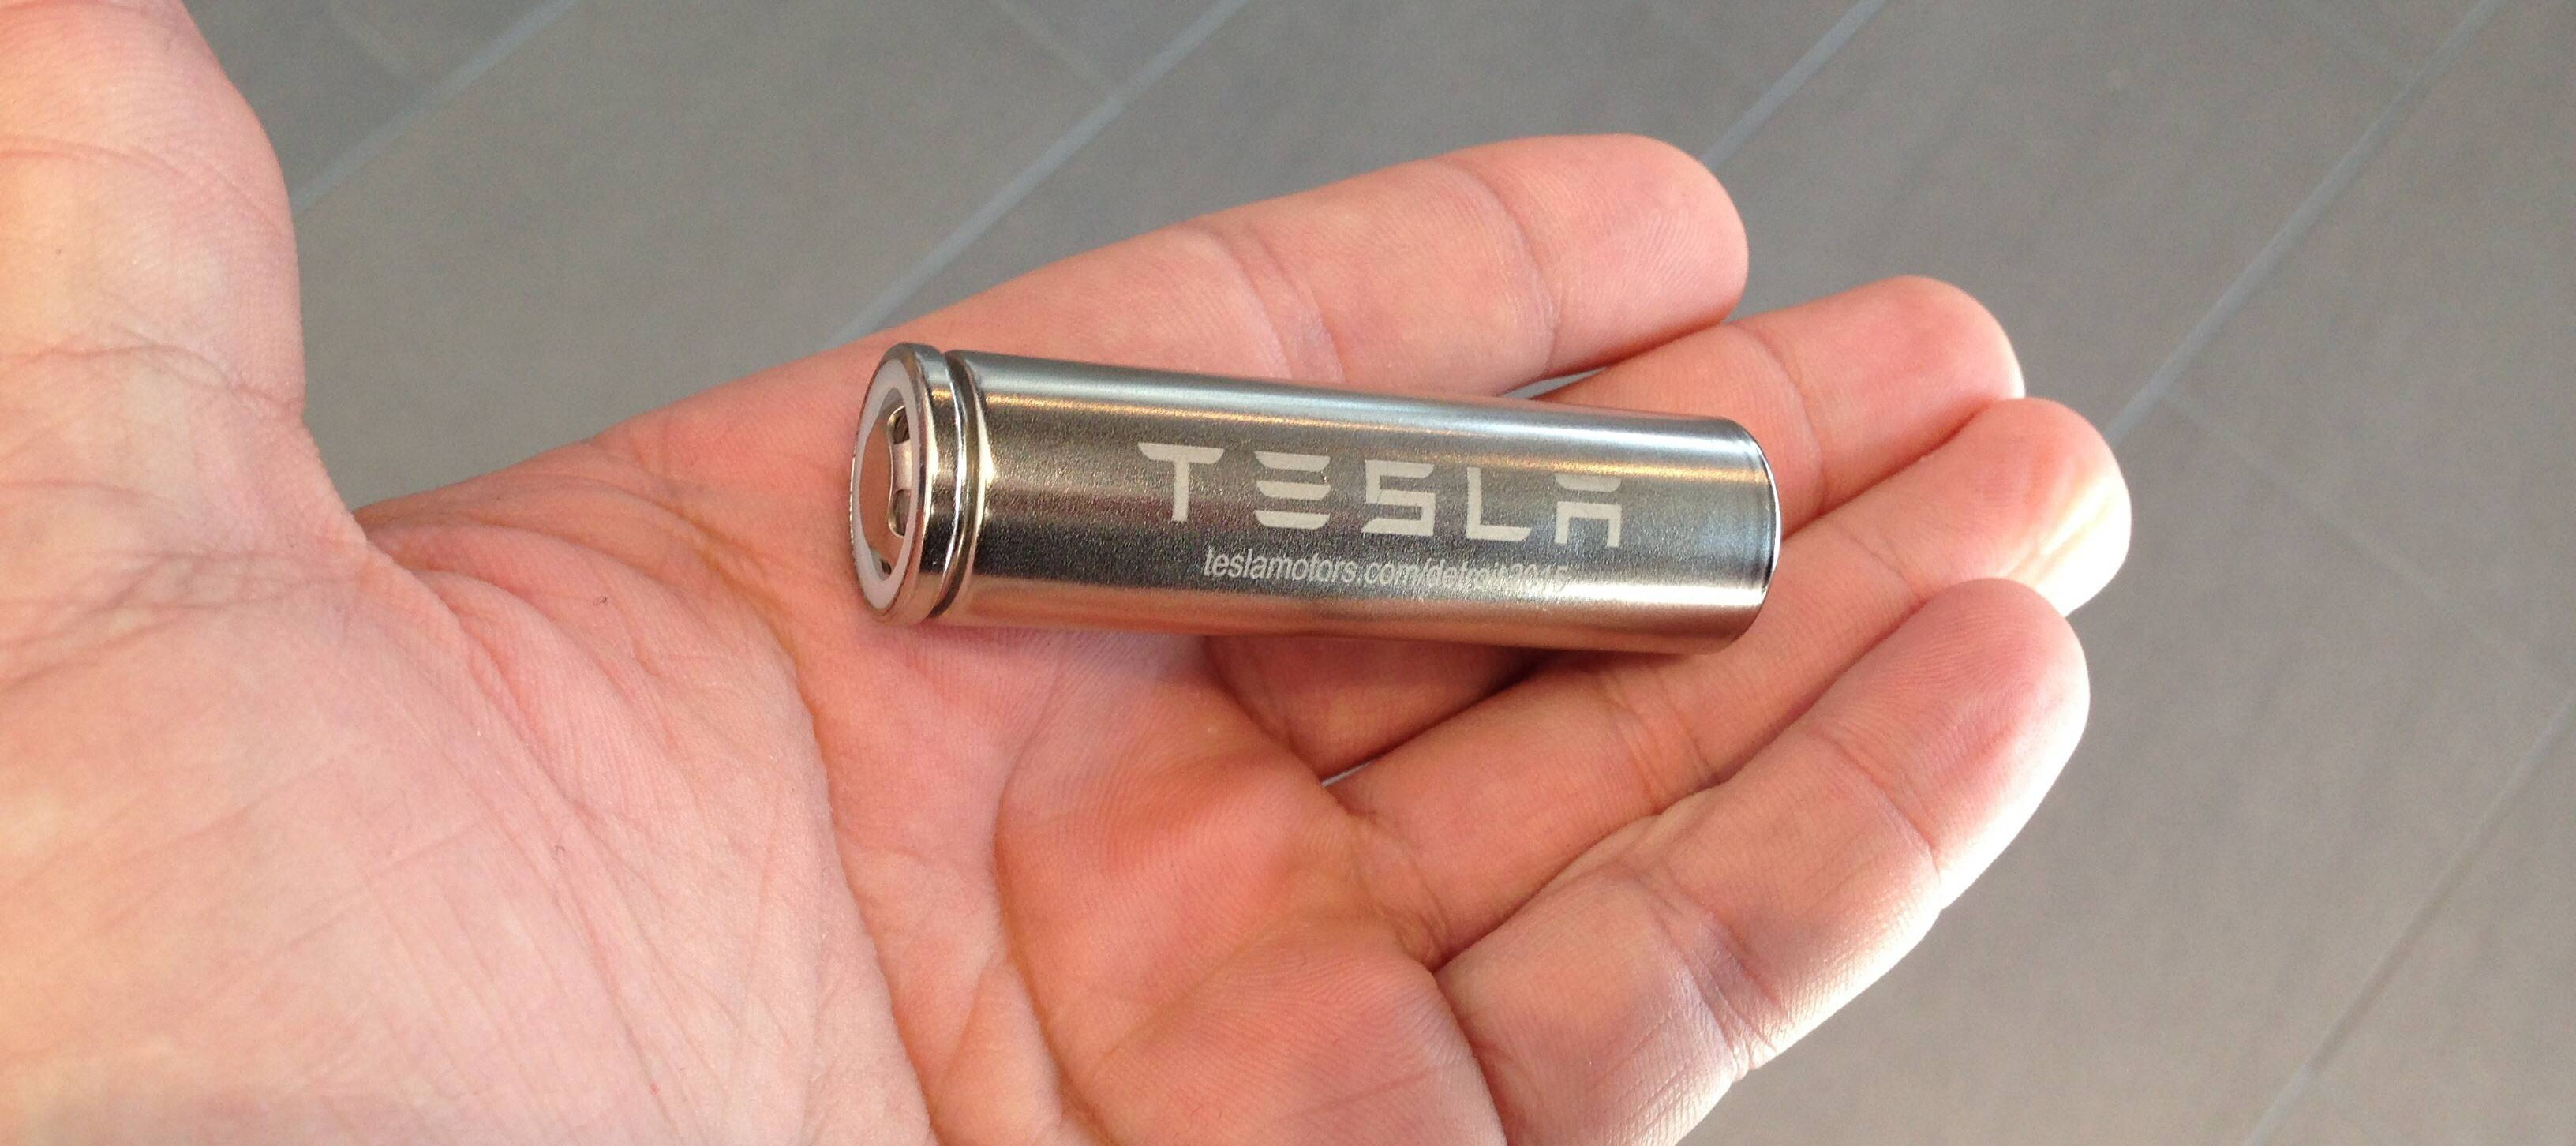 Tesla is working on new and improved battery cells